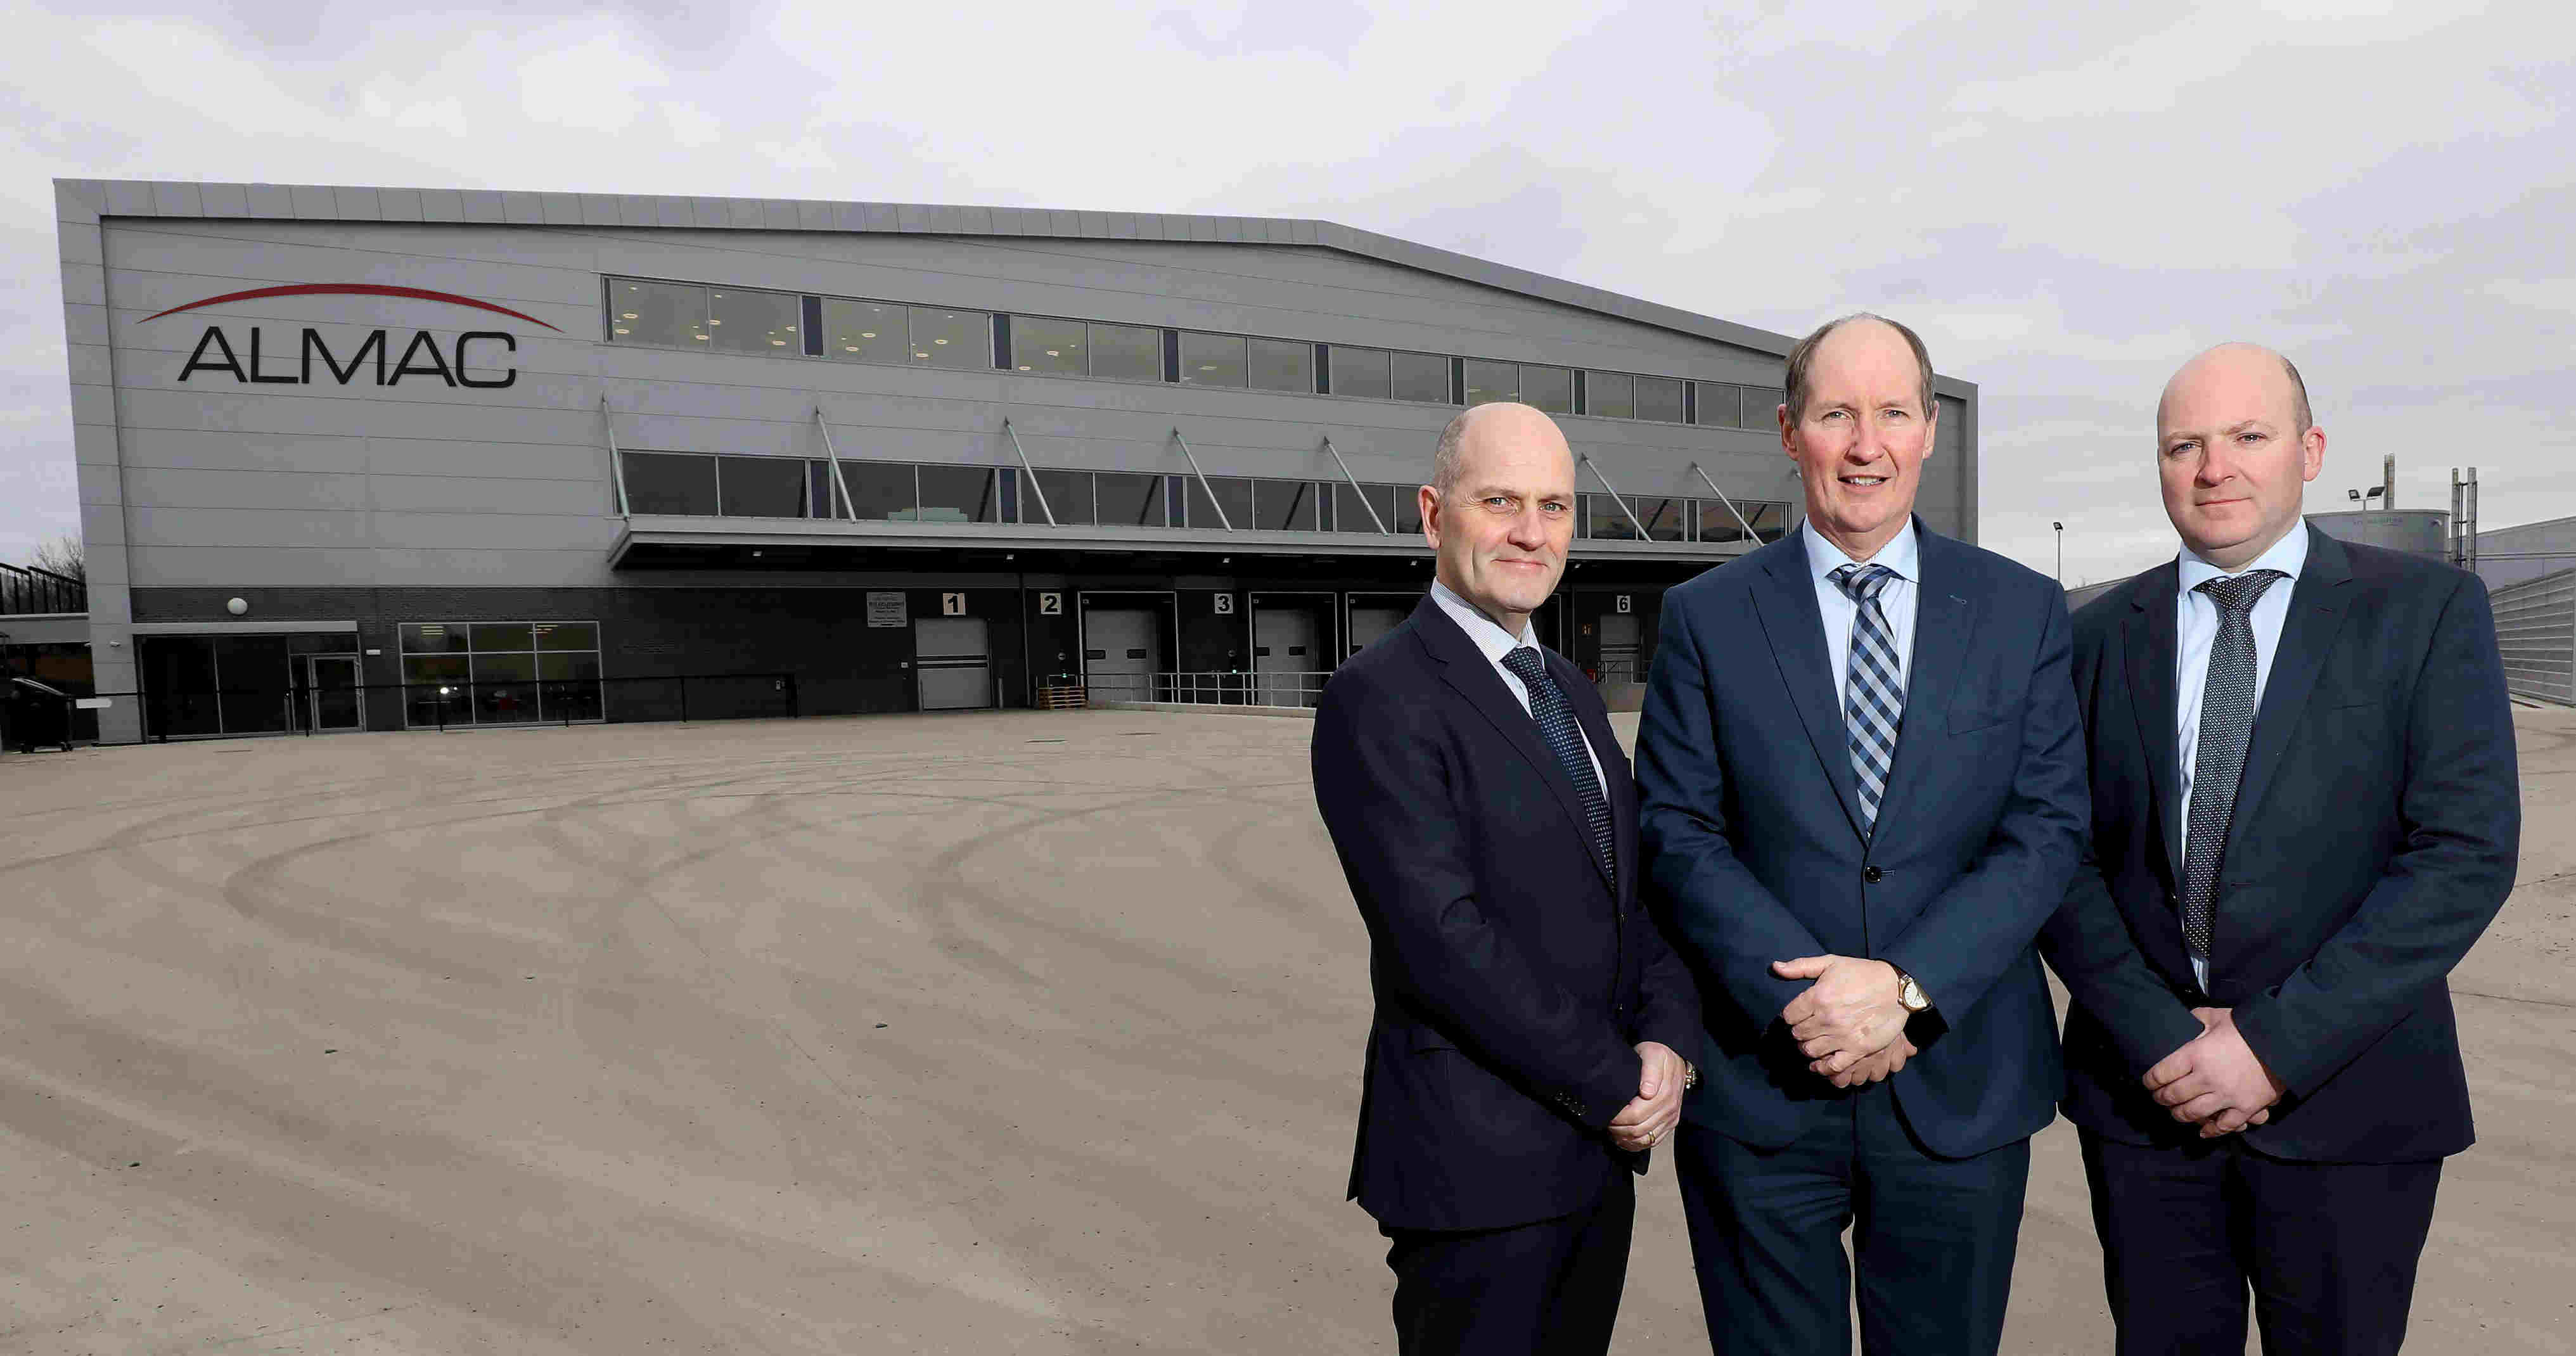 Almac Group Expands with Opening of £20 million Cold Chain Facility